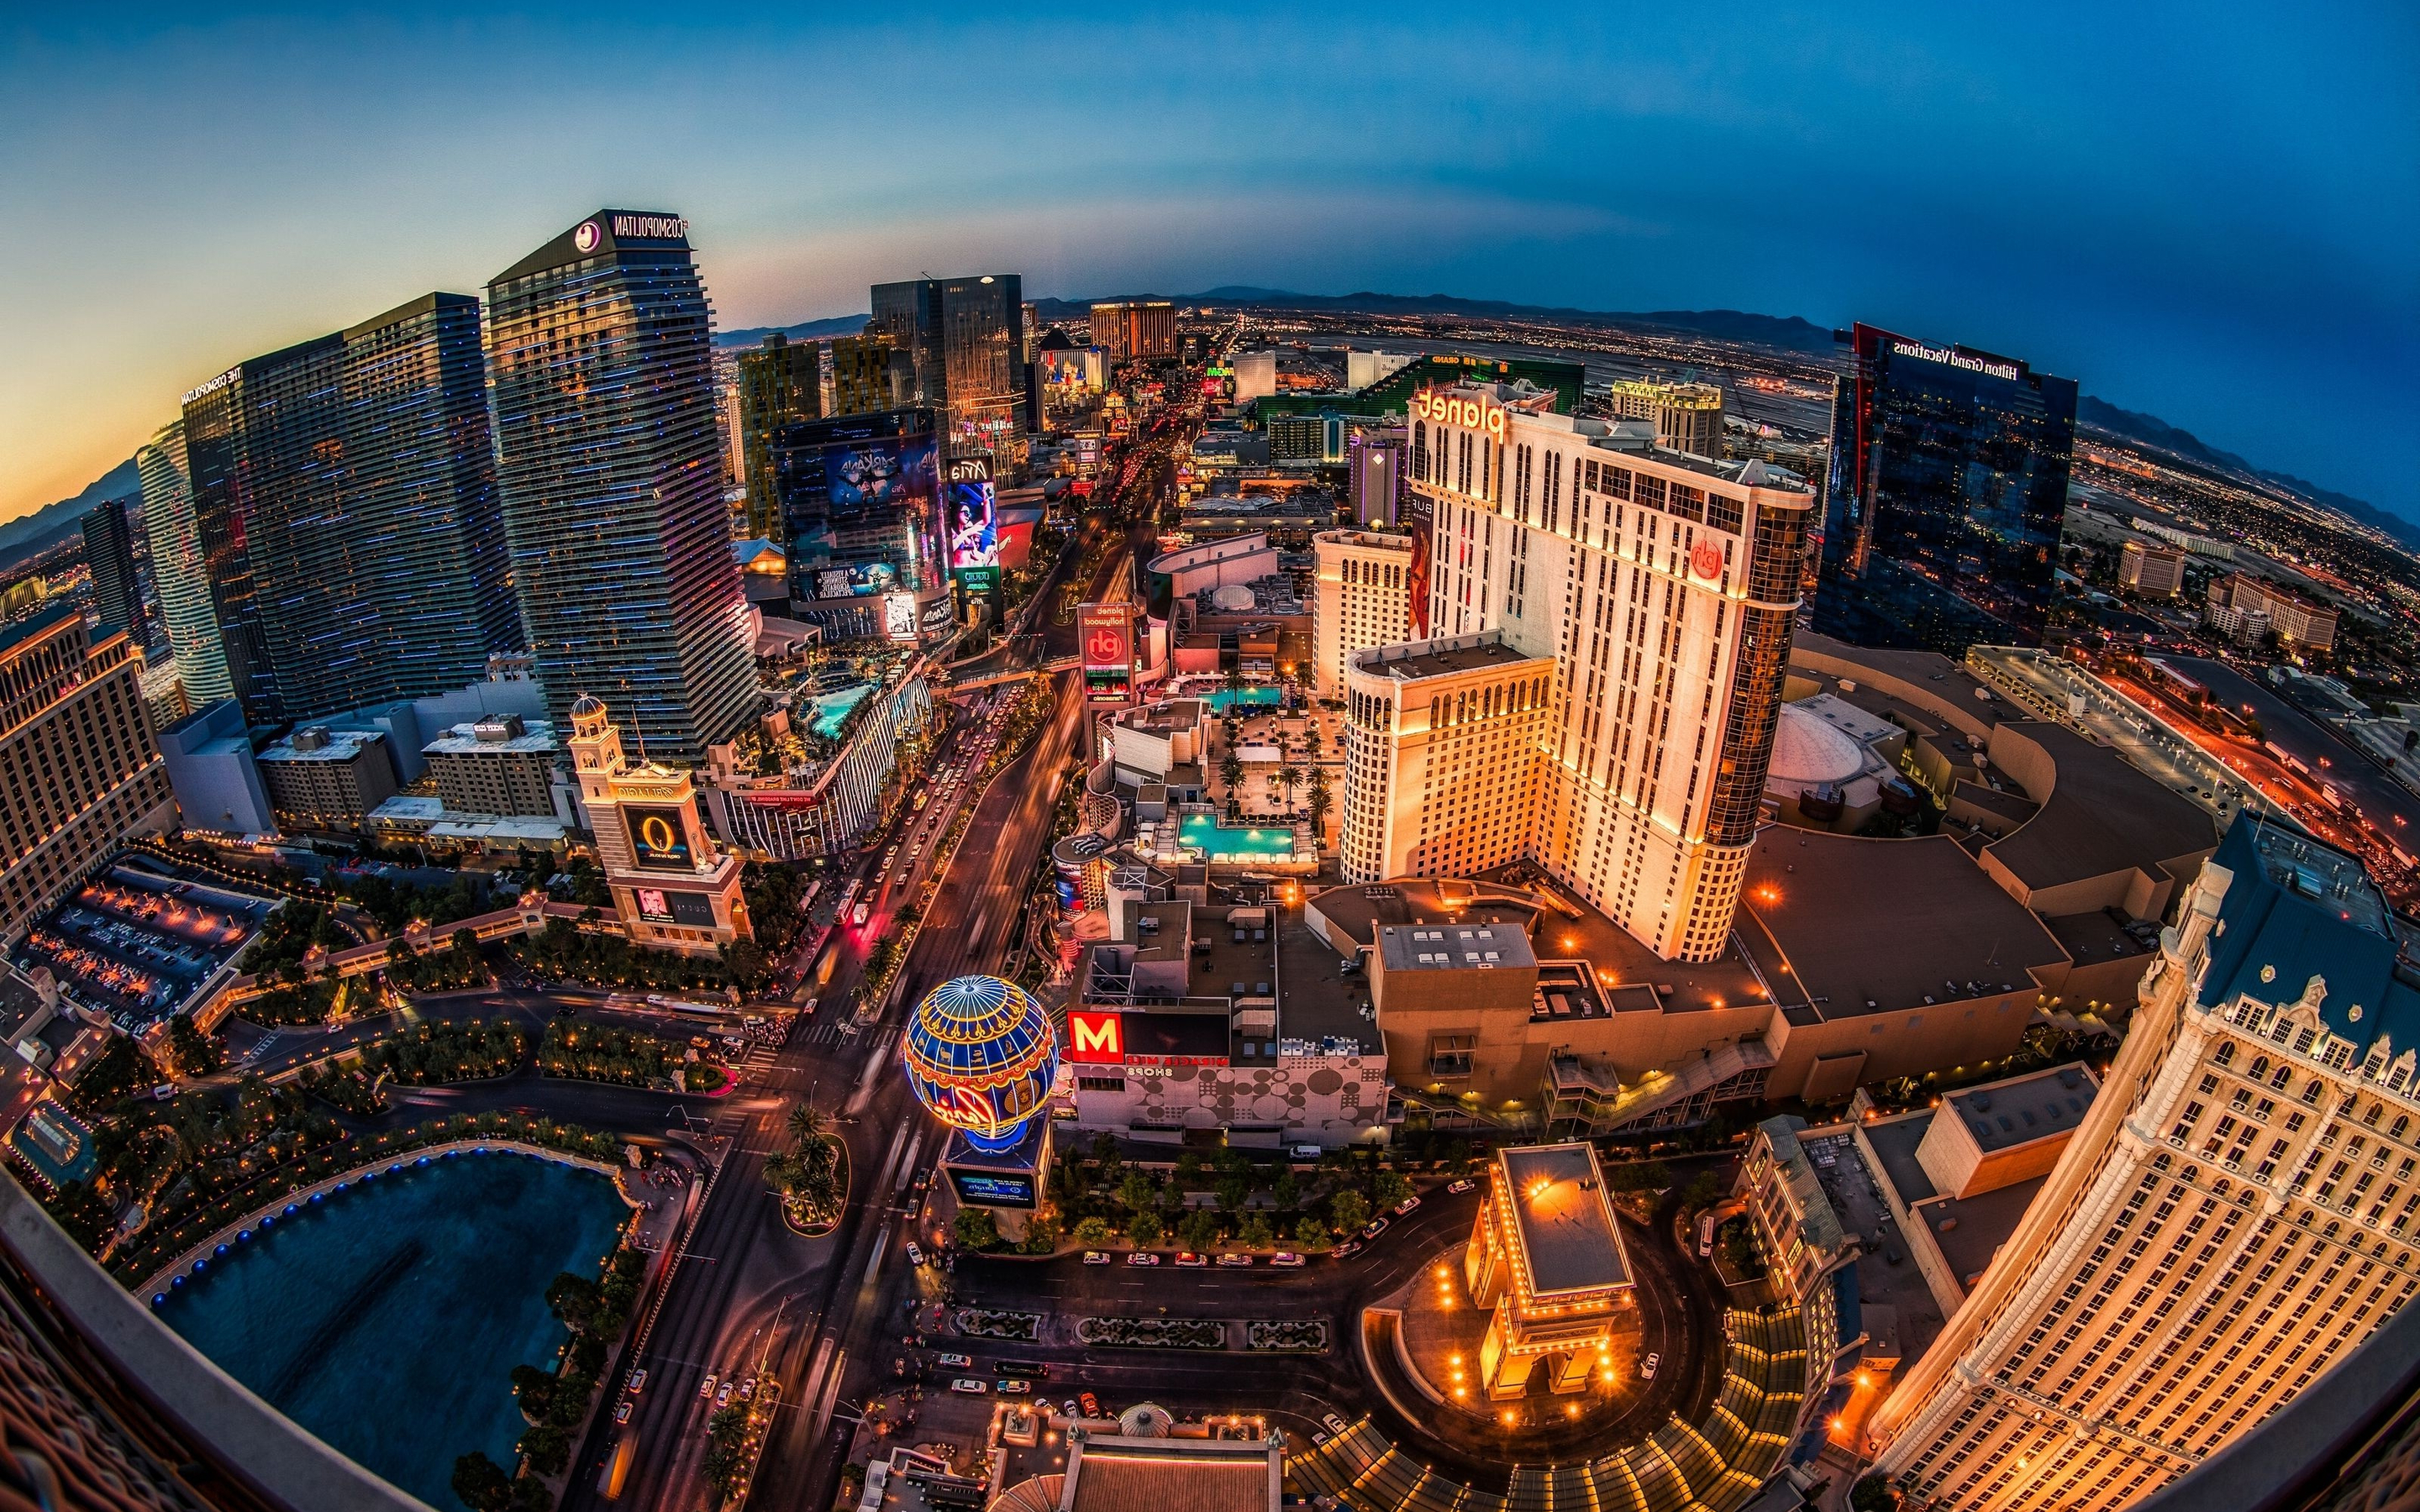 2880x1800 Las Vegas Buildings Lights Macbook Pro Retina Hd 4k Wallpapers Images Backgrounds Photos And Pictures